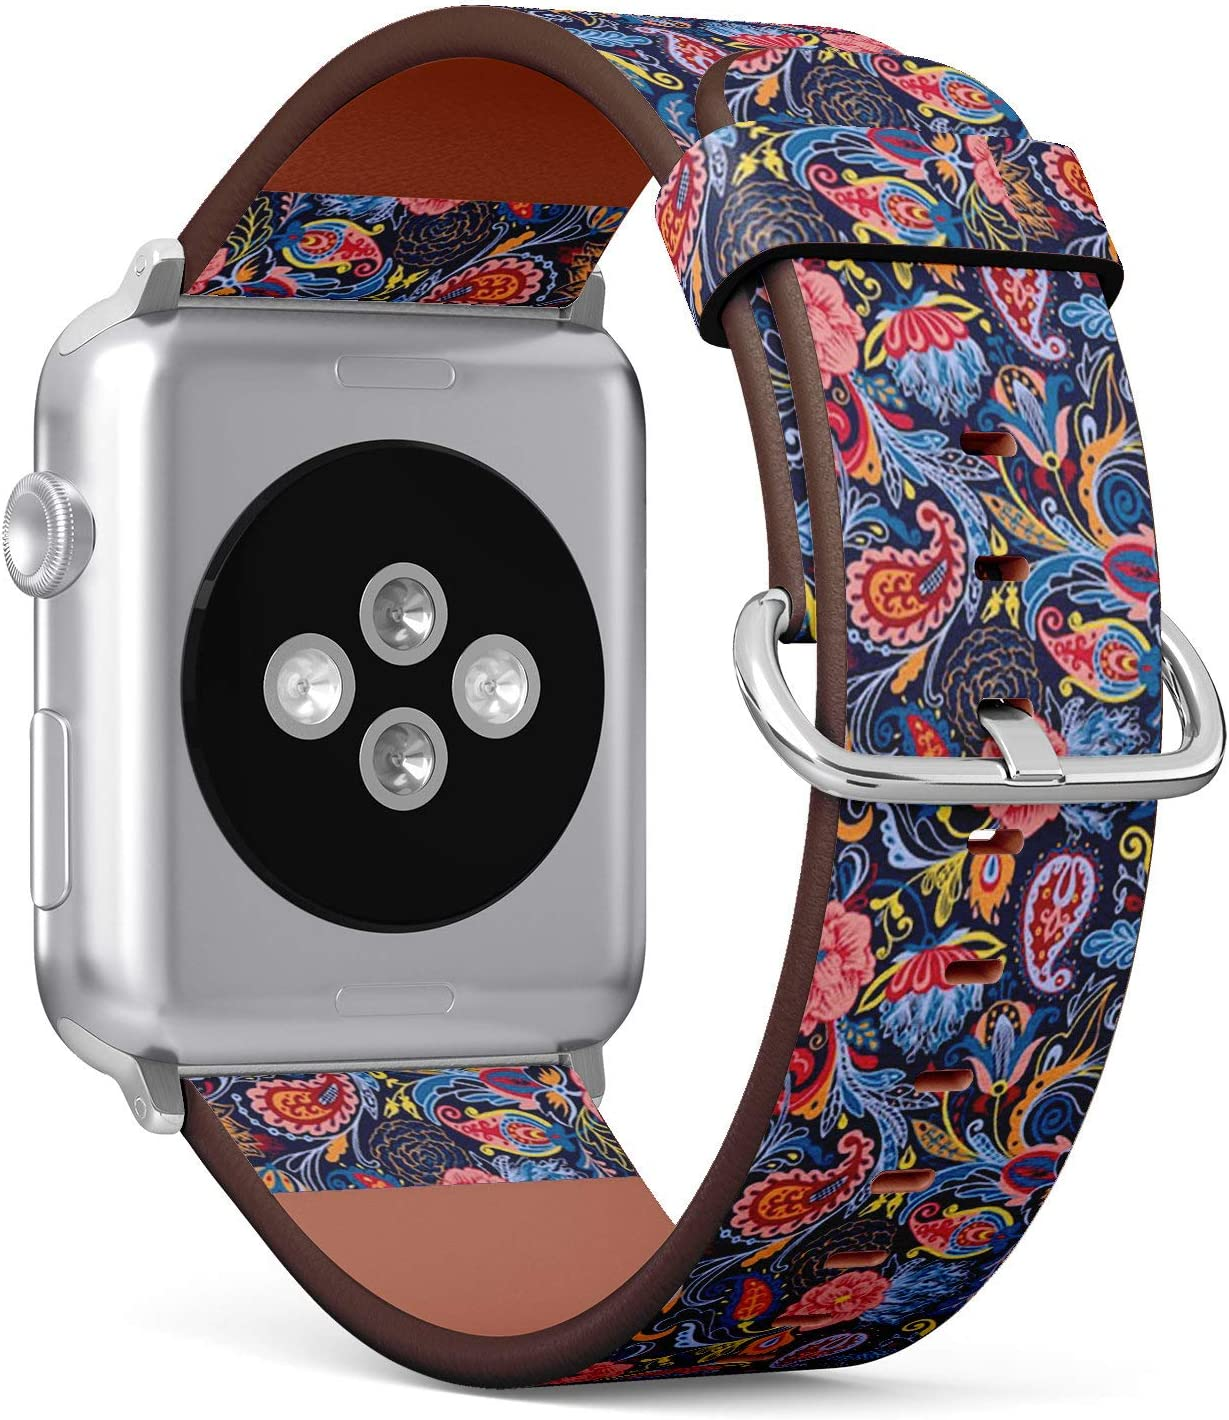 Compatible with Big Apple Watch 42mm & 44mm (All Series) Leather Watch Wrist Band Strap Bracelet with Stainless Steel Clasp and Adapters (Paisley)